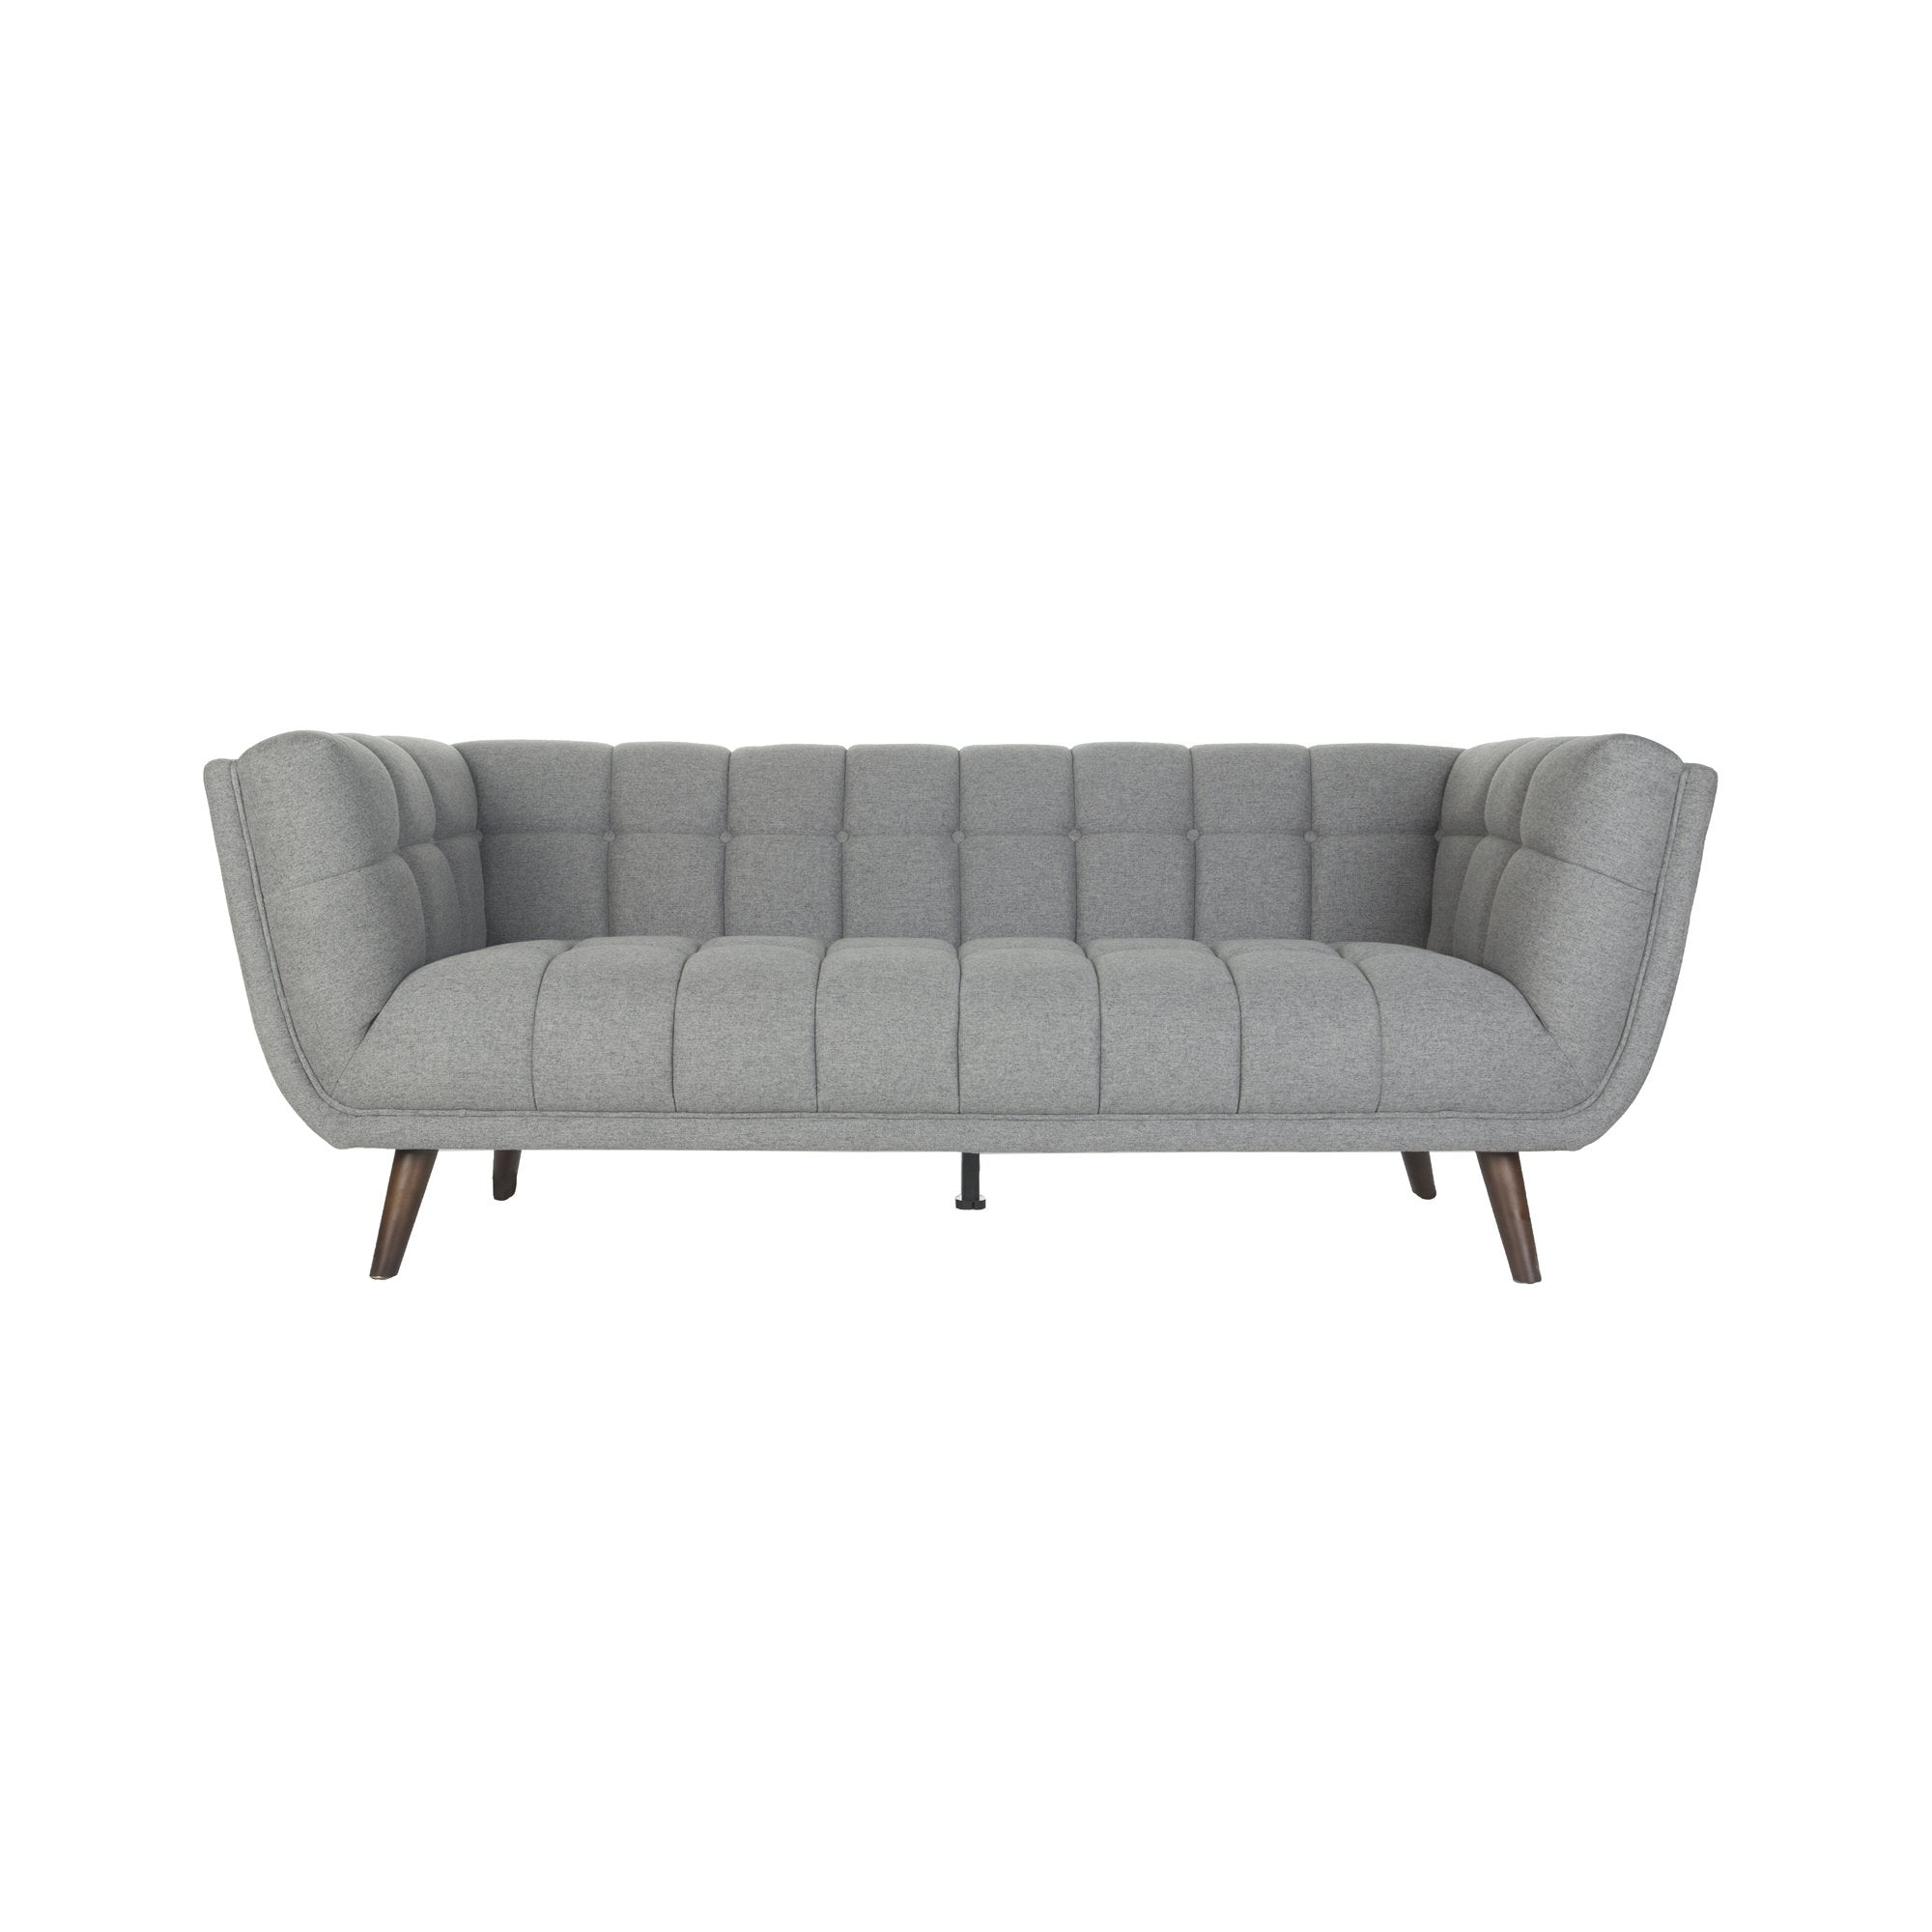 Picture of Axel Sofa